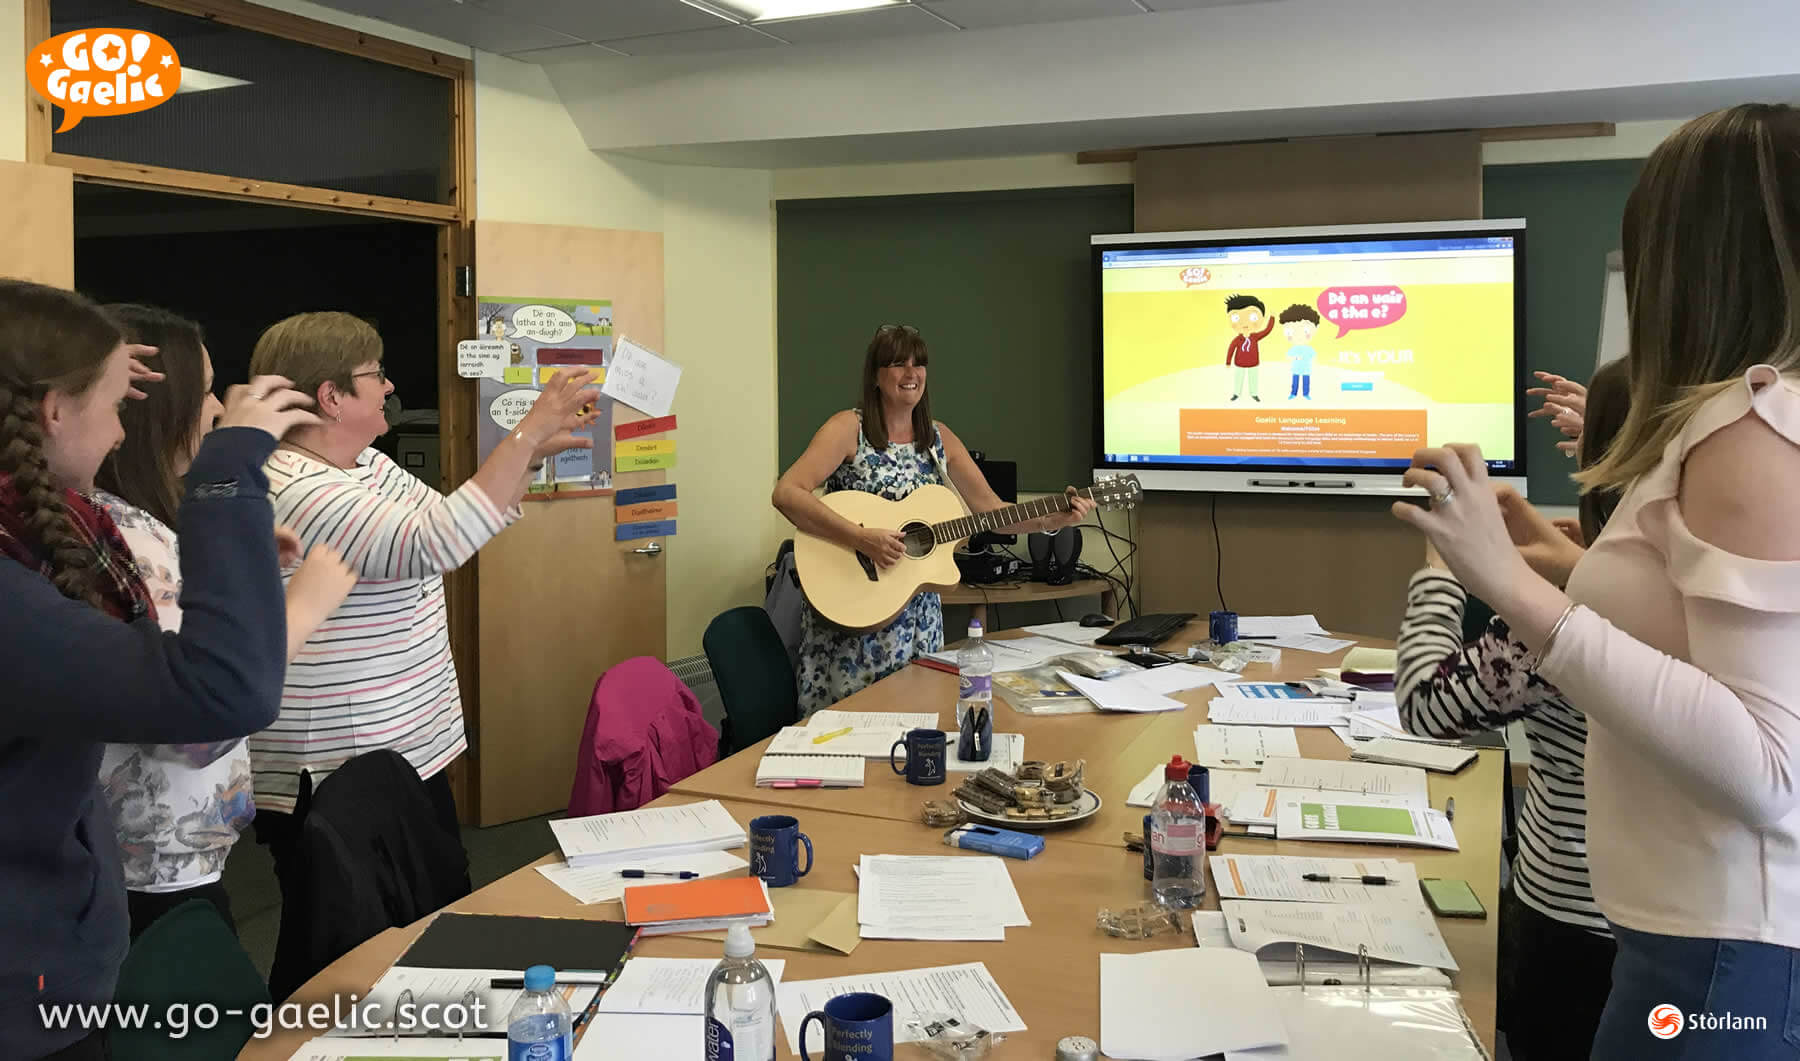 Active learning: Jackie Mullen leads the teachers in dramatic song as part of the Go! Gaelic resource training